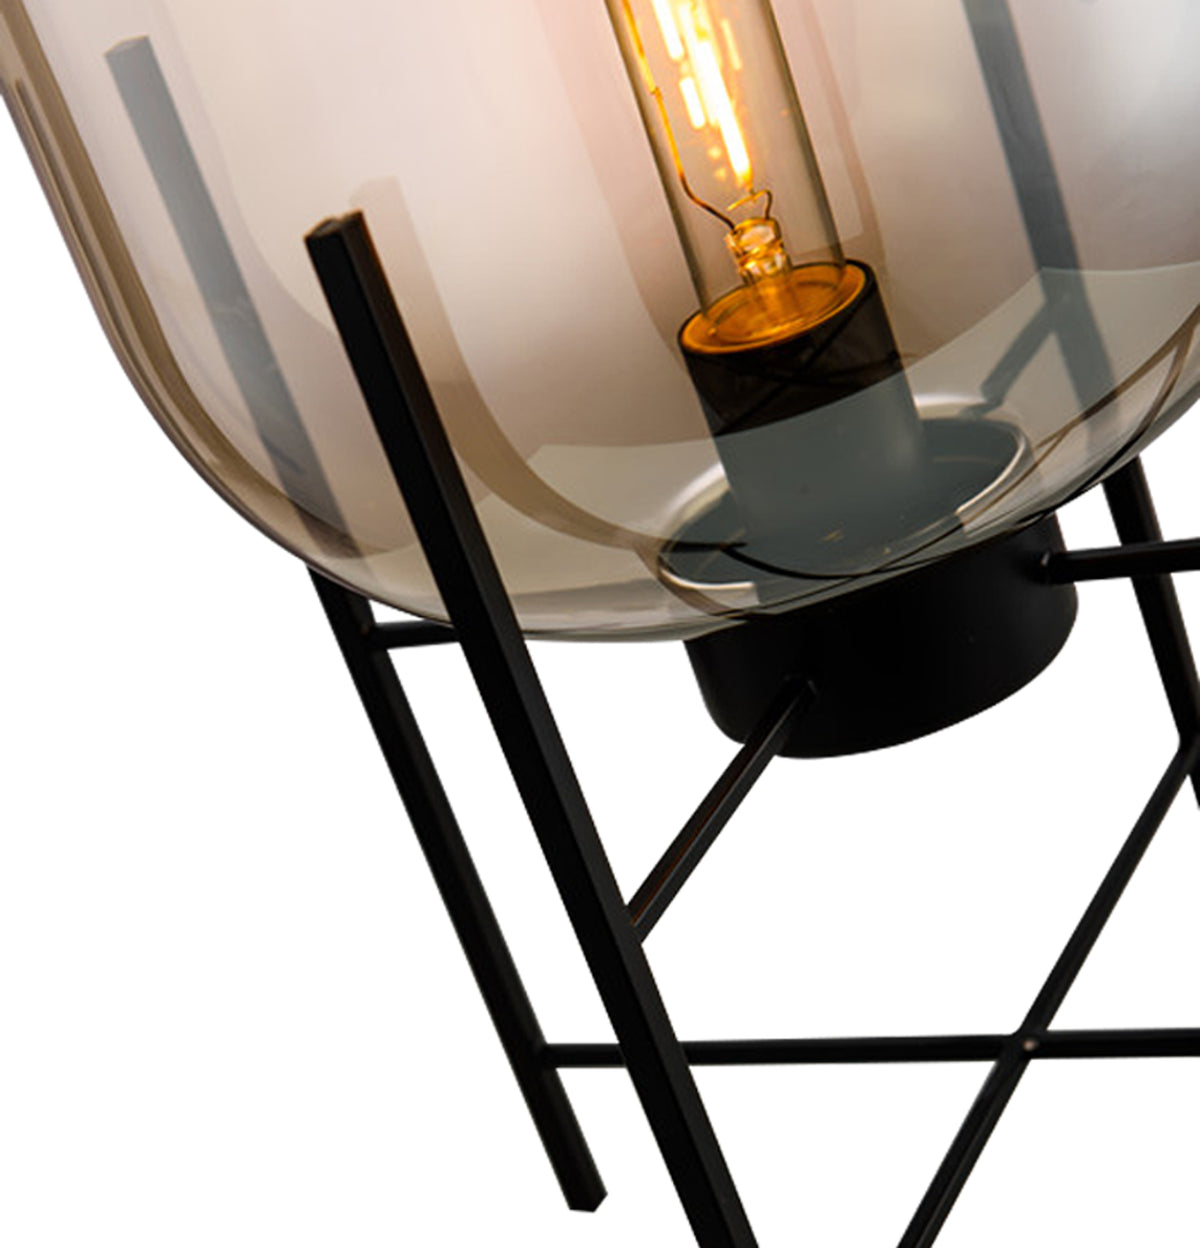 Cannula Floor Lamp - objects of interest